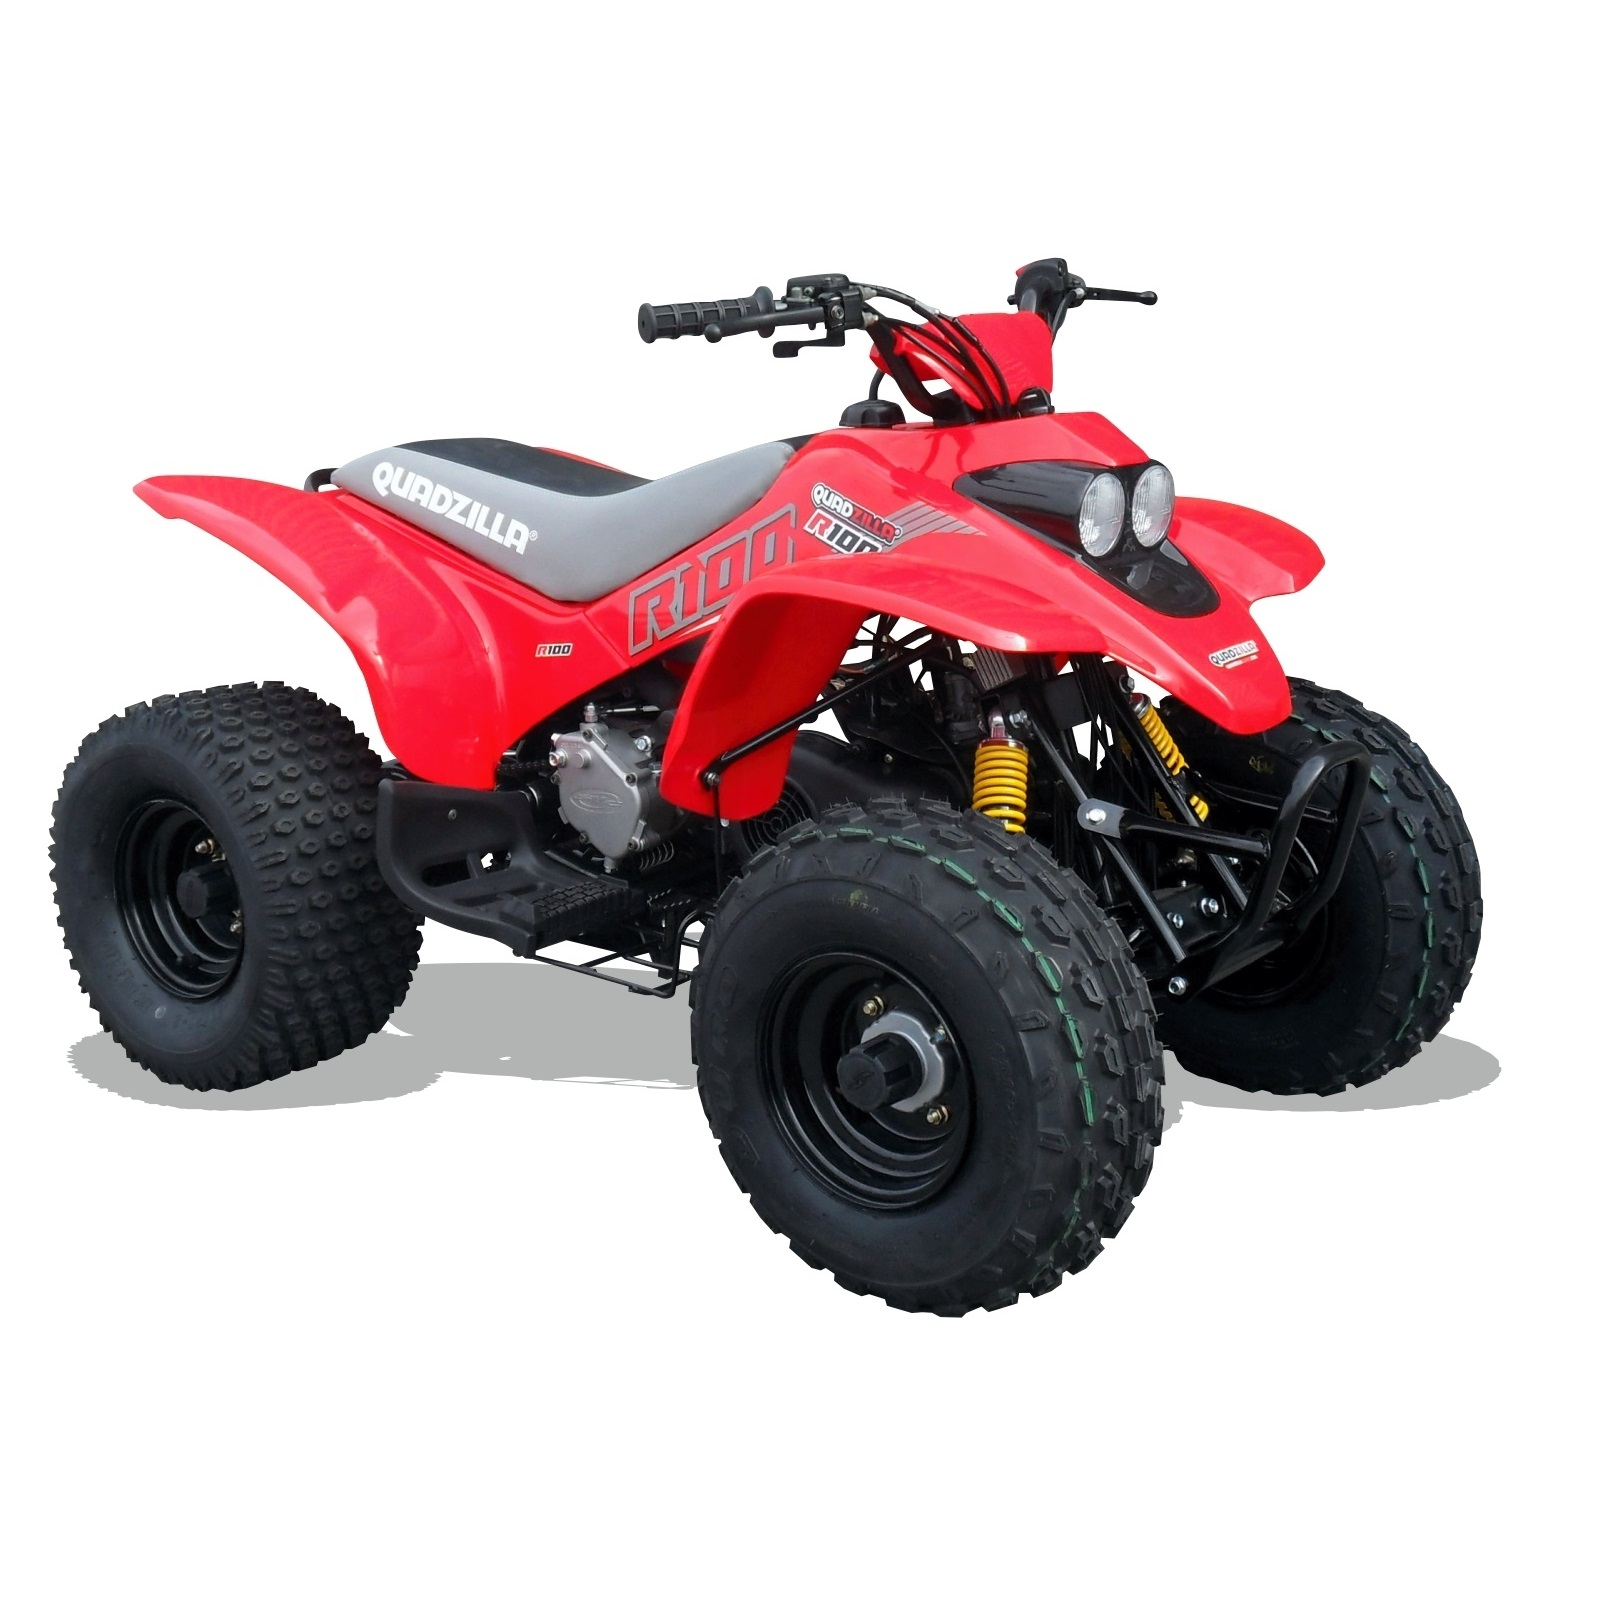 QUADZILLA R100 Children's Quad | Products | New Forest ...